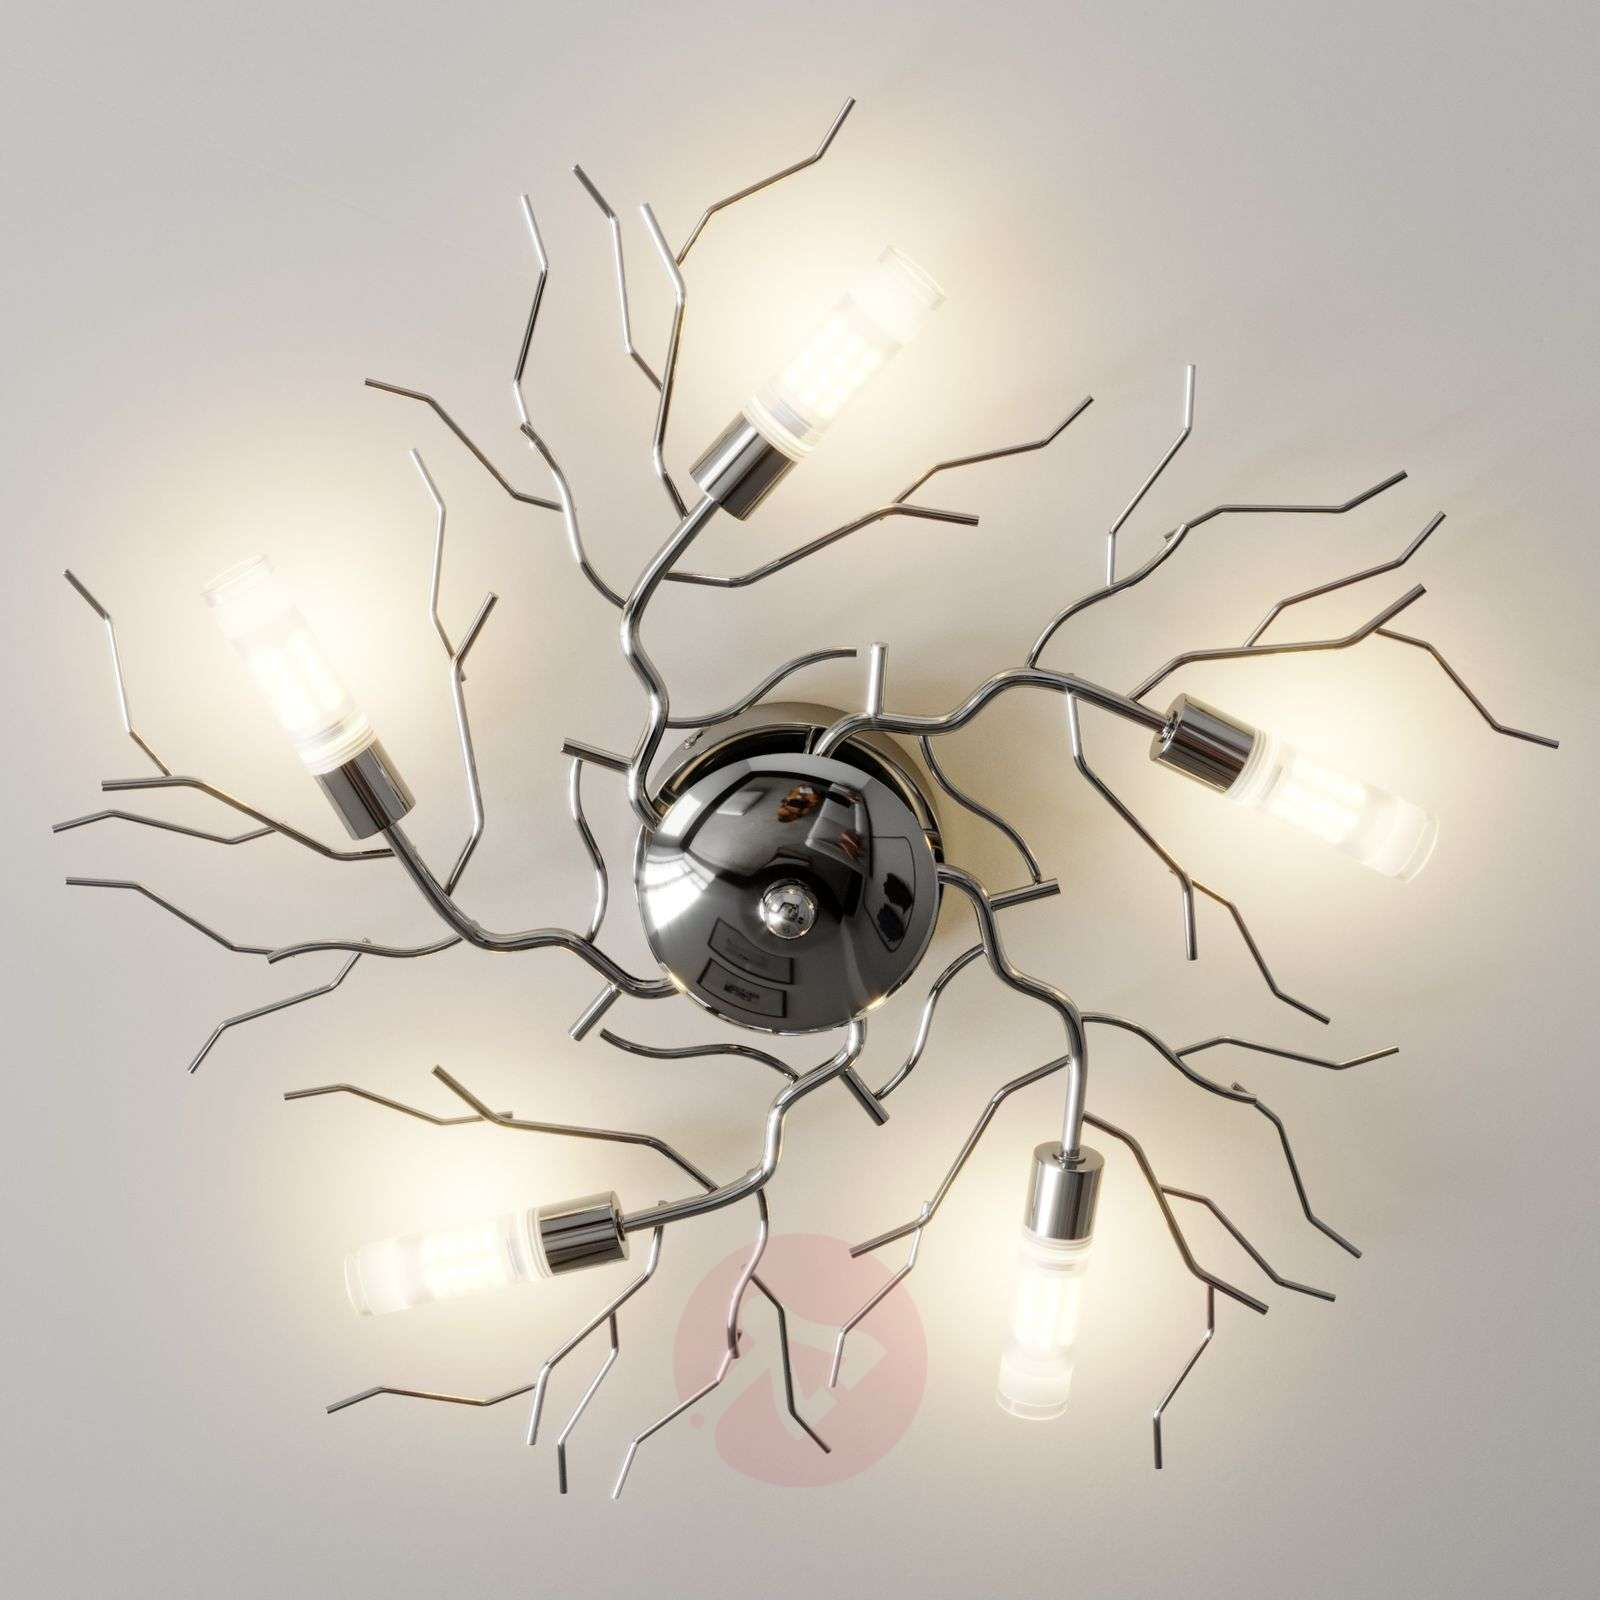 Oksamainen LED-kattovalaisin Felicity-9620804-024